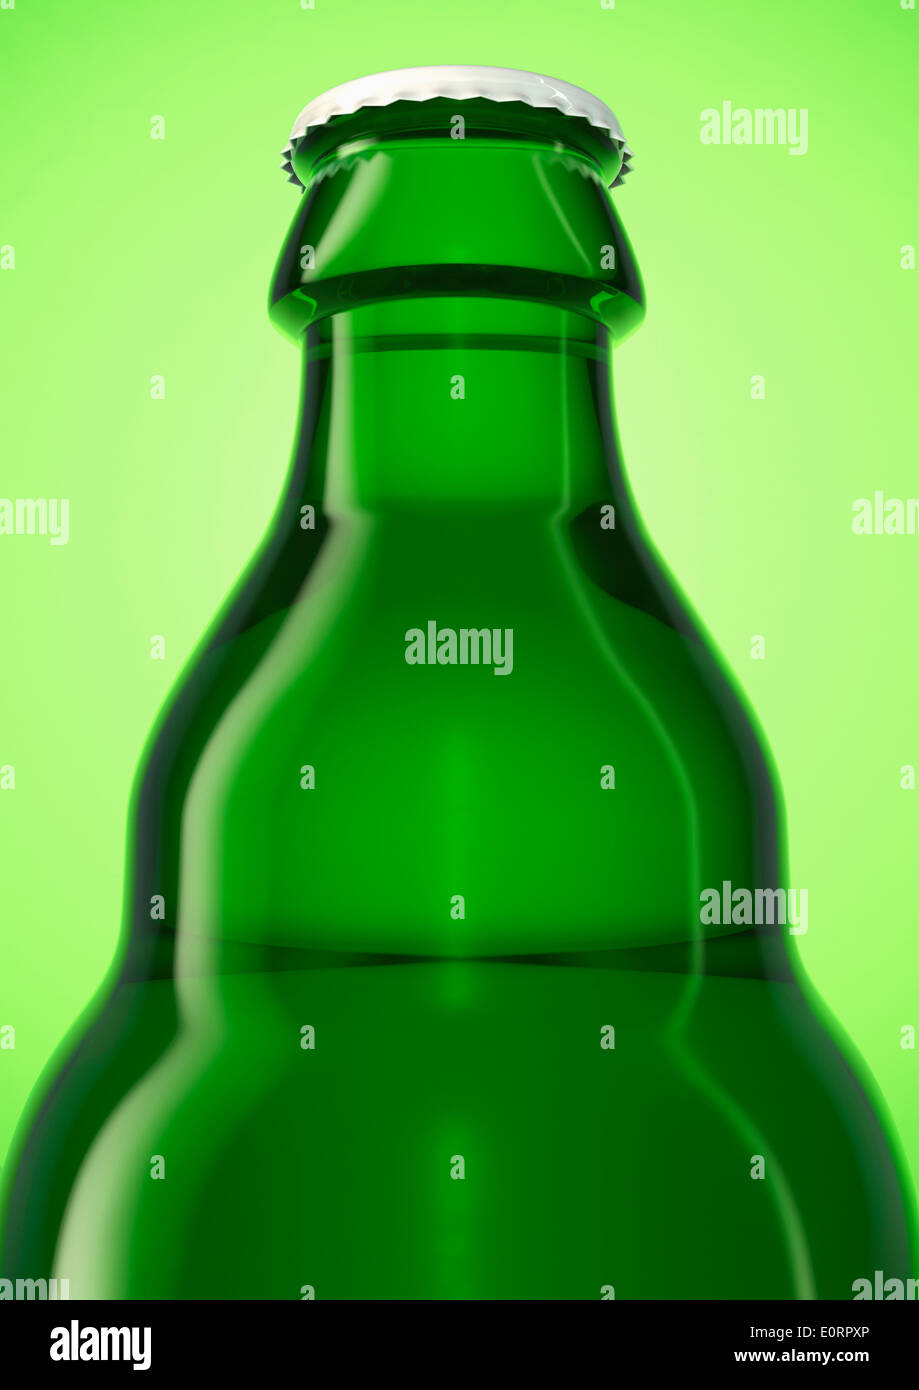 Green beer bottle with cap on a green background - Stock Image